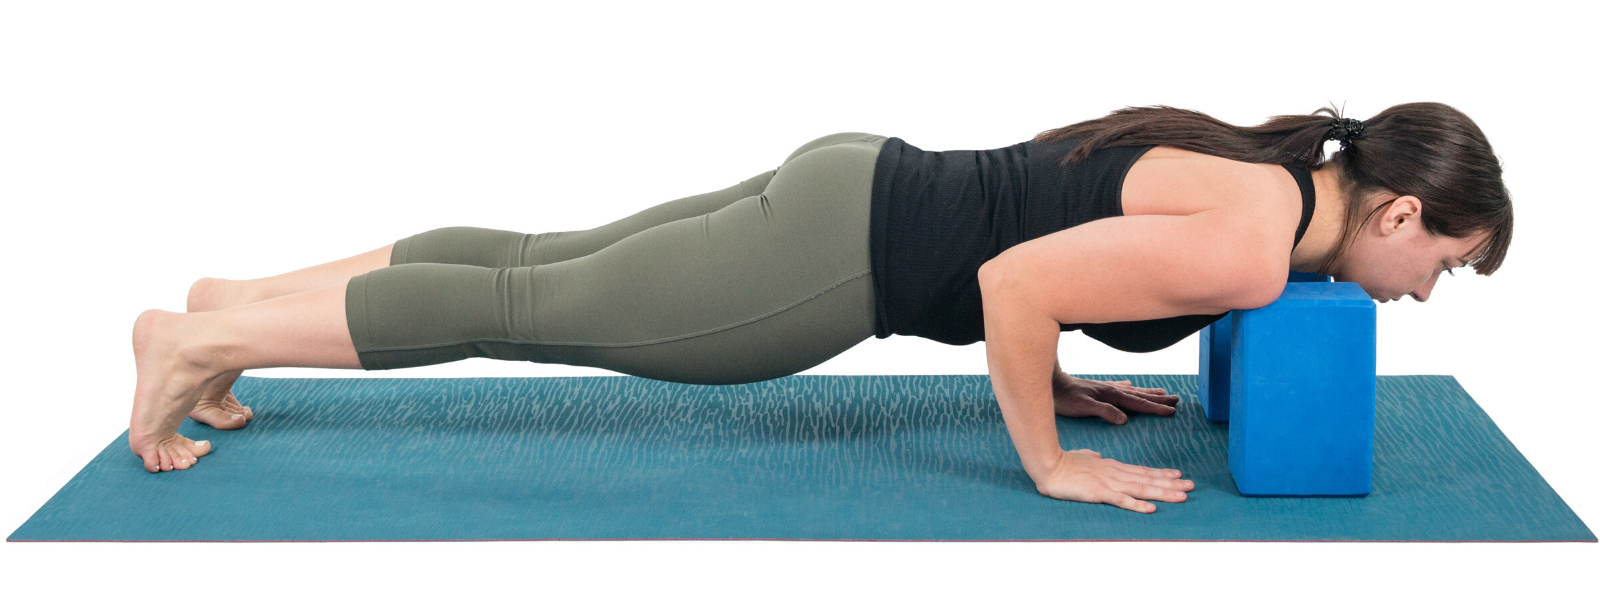 Chaturanga Dandasana on blocks